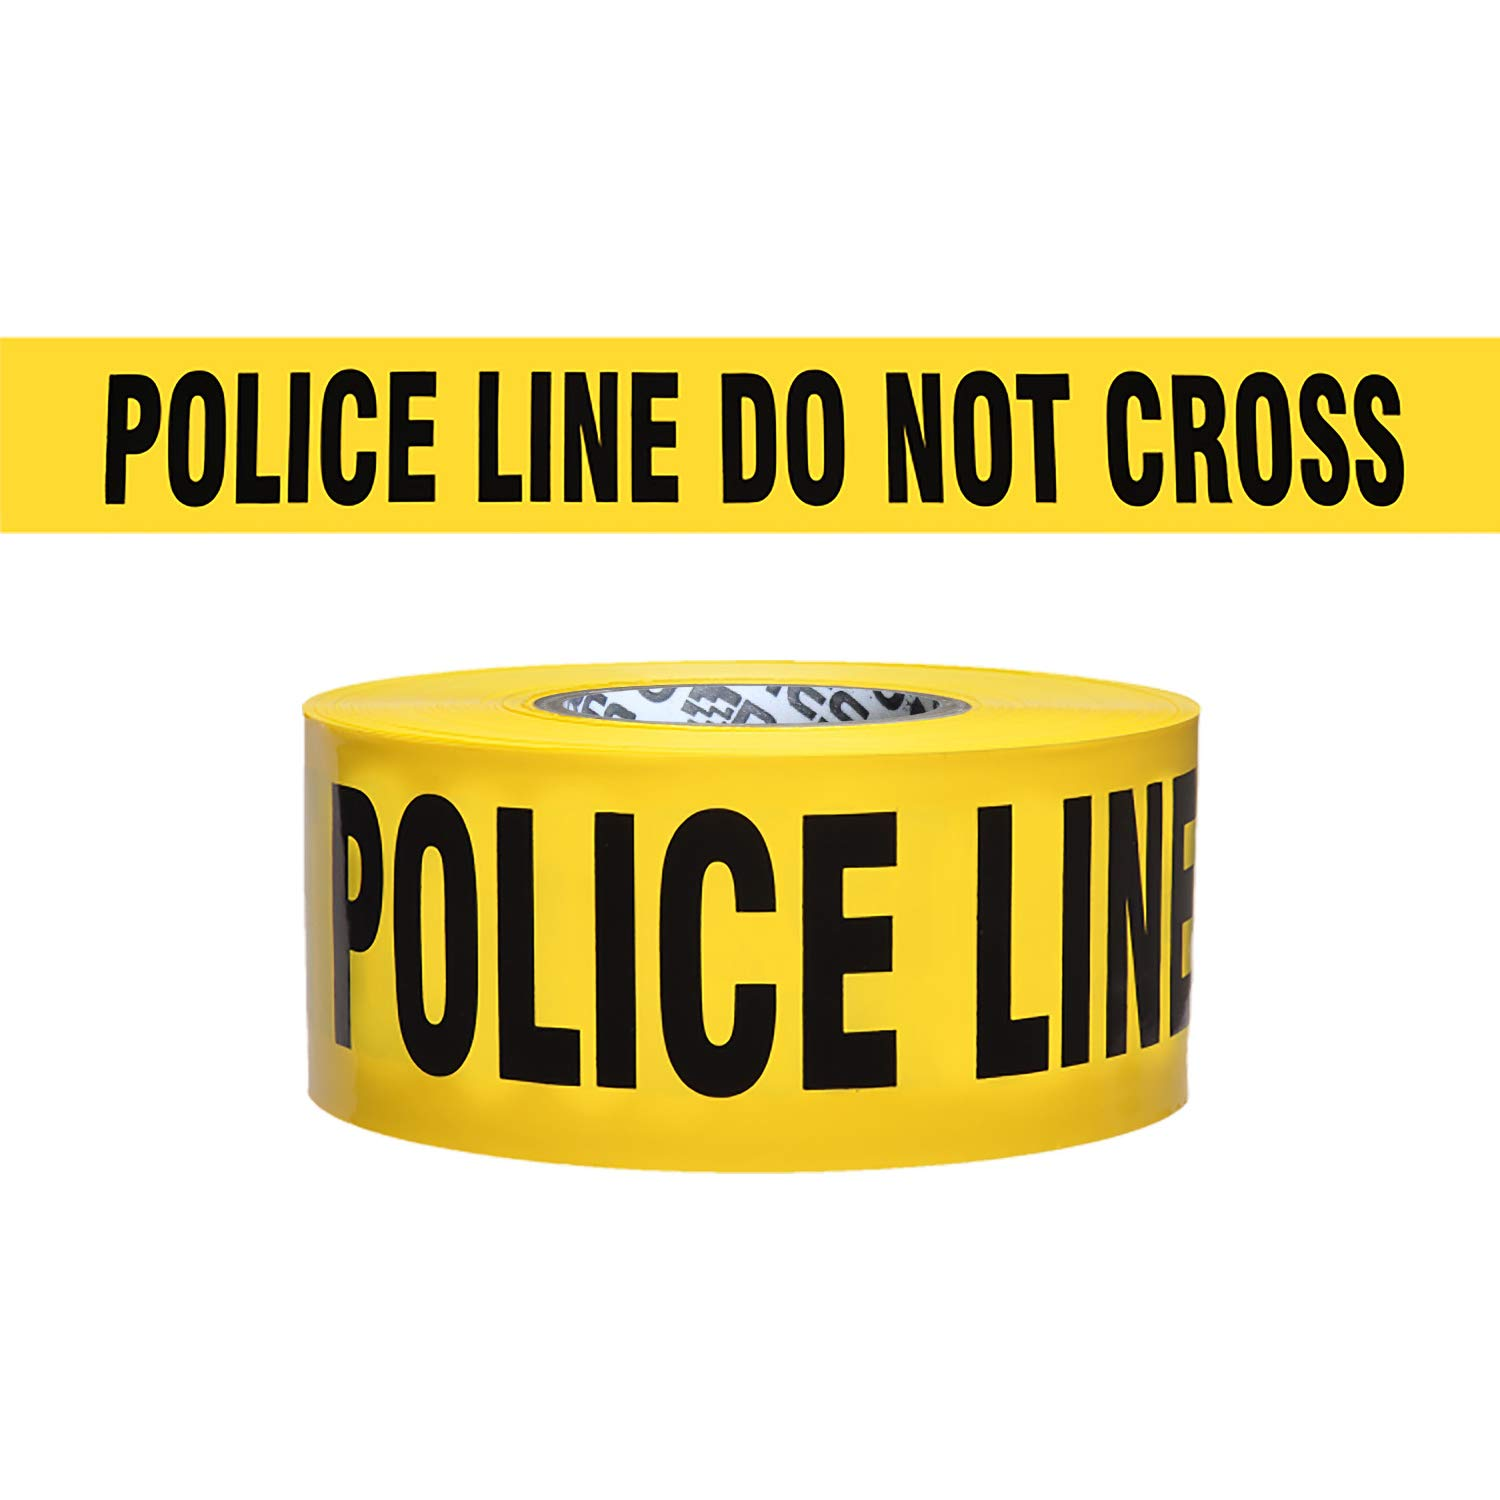 Presco Economy Printed Barricade Tape: 3 in. x 1000 ft. (Yellow with Black''POLICE LINE DO NOT CROSS'' printing)